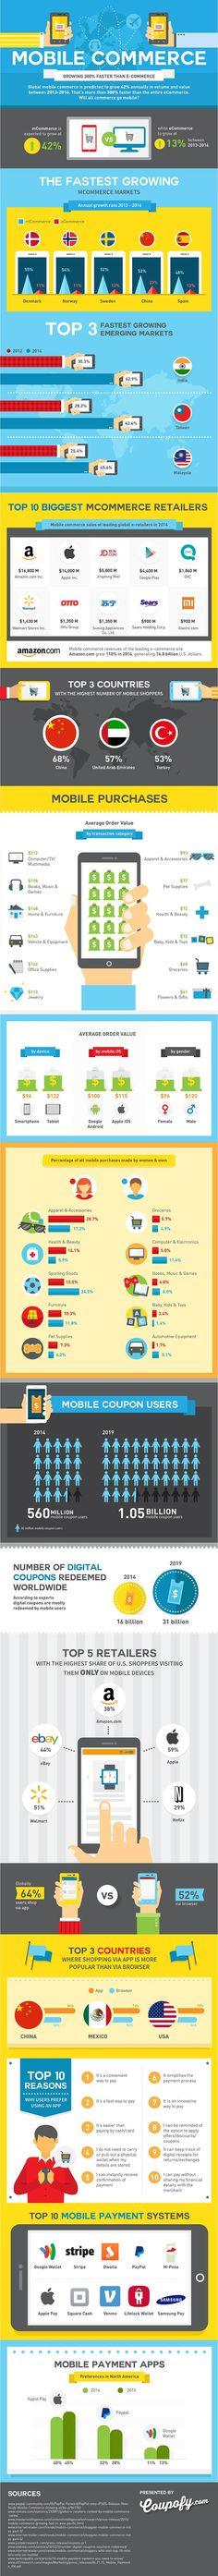 Mobile Commerce Growing 300% Faster than eCommerce - @visualistan